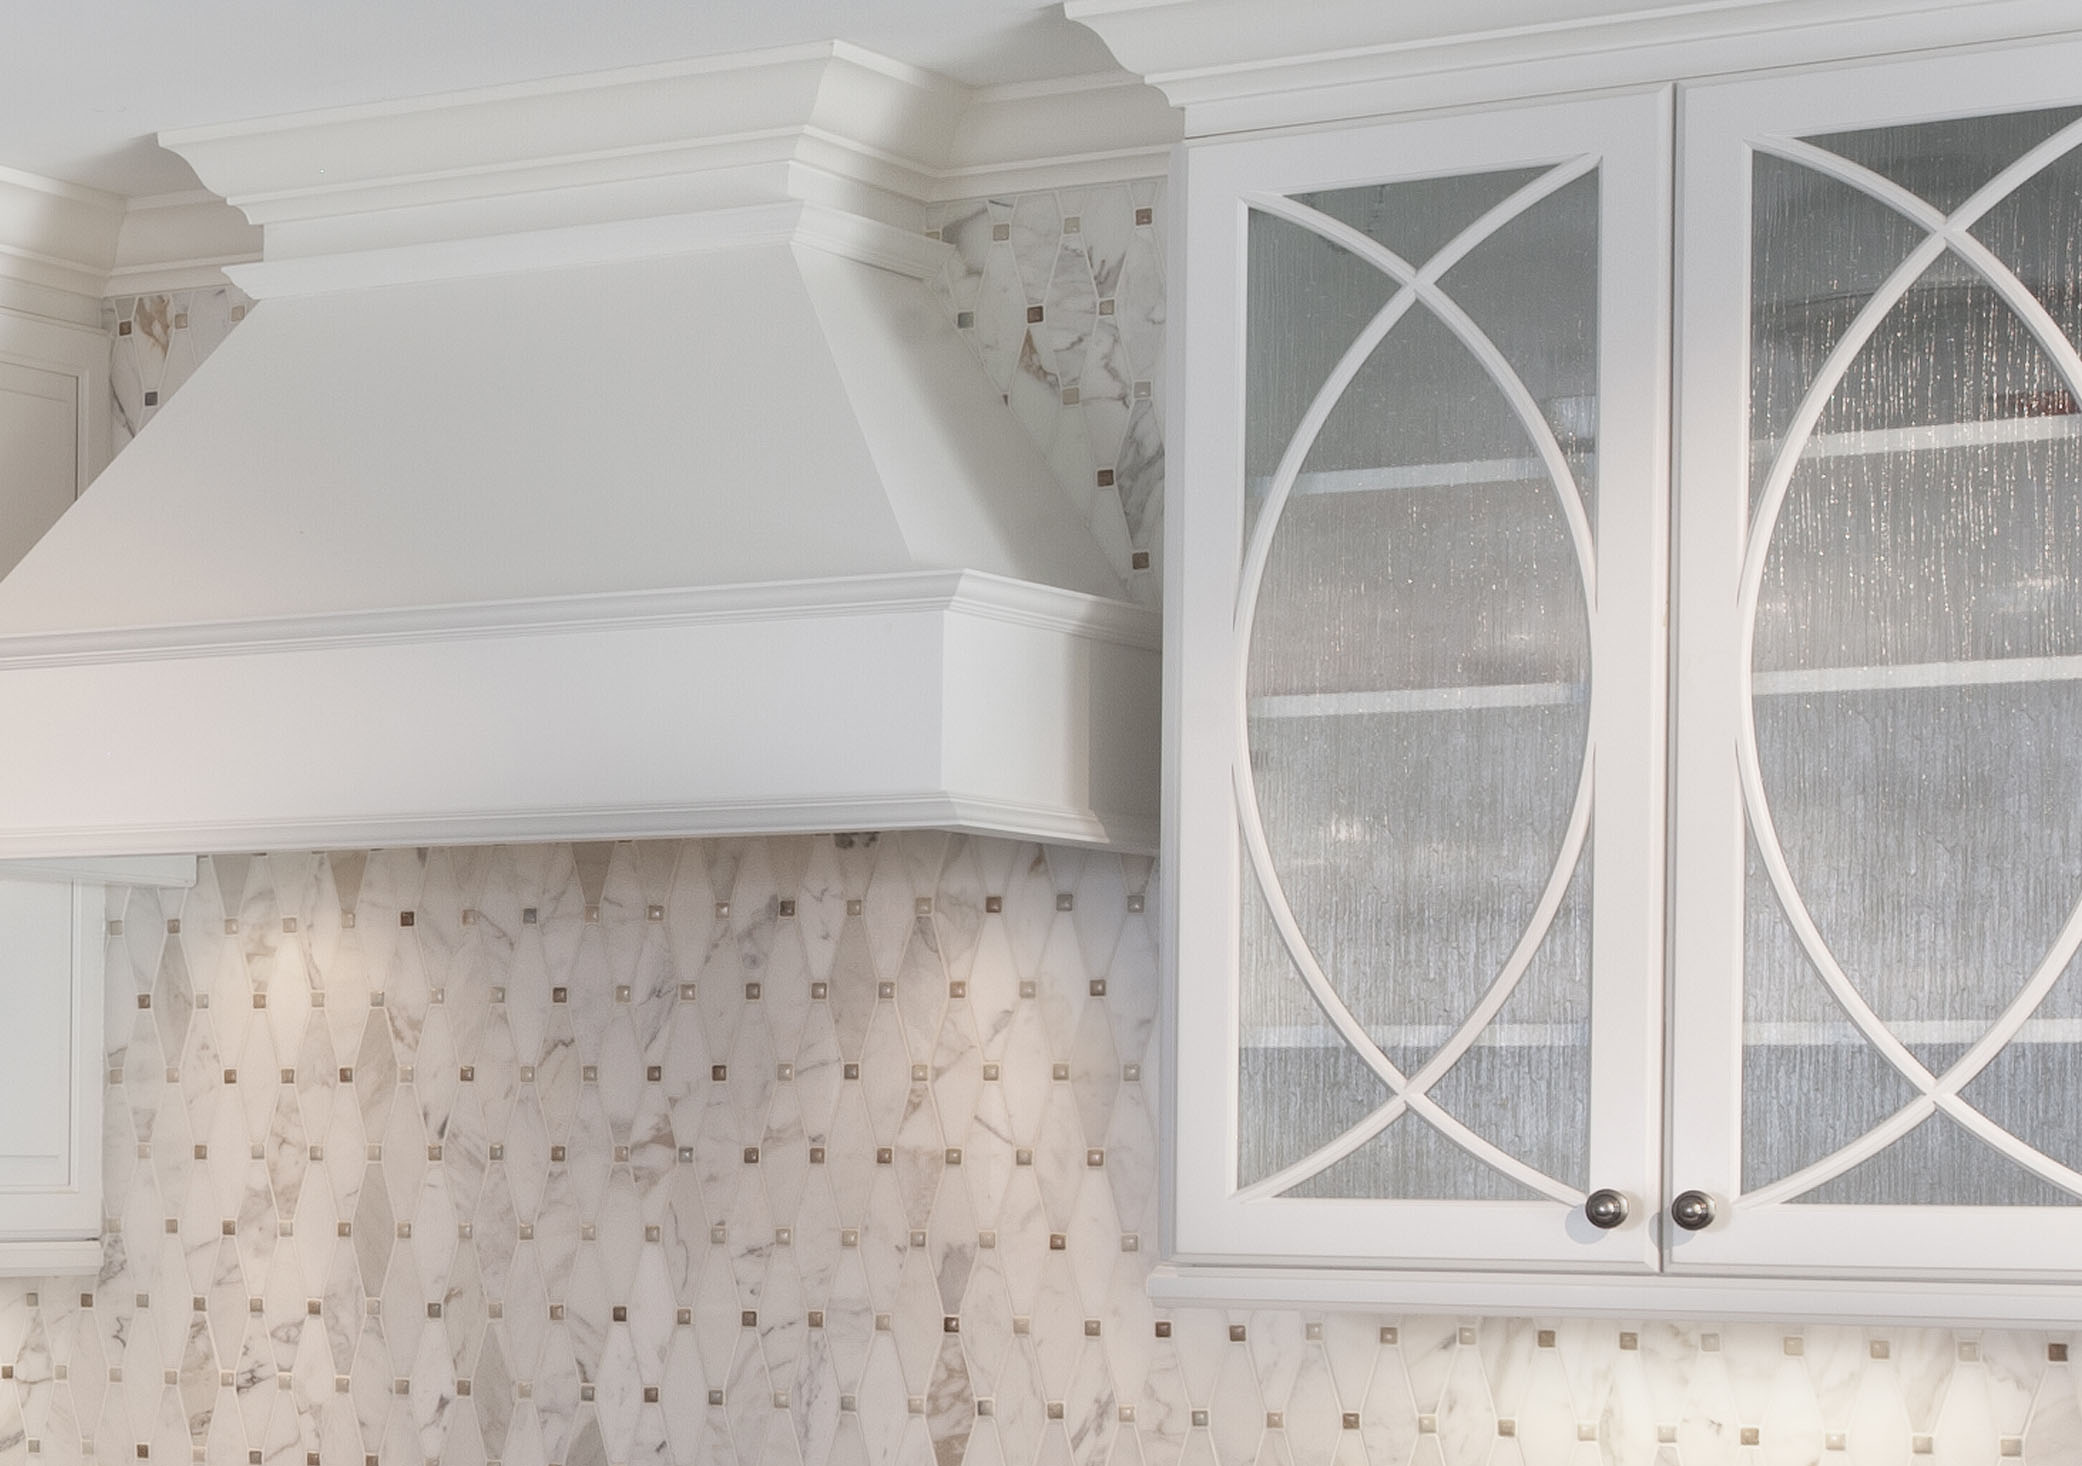 Oven Hood and Cabinetry Detail